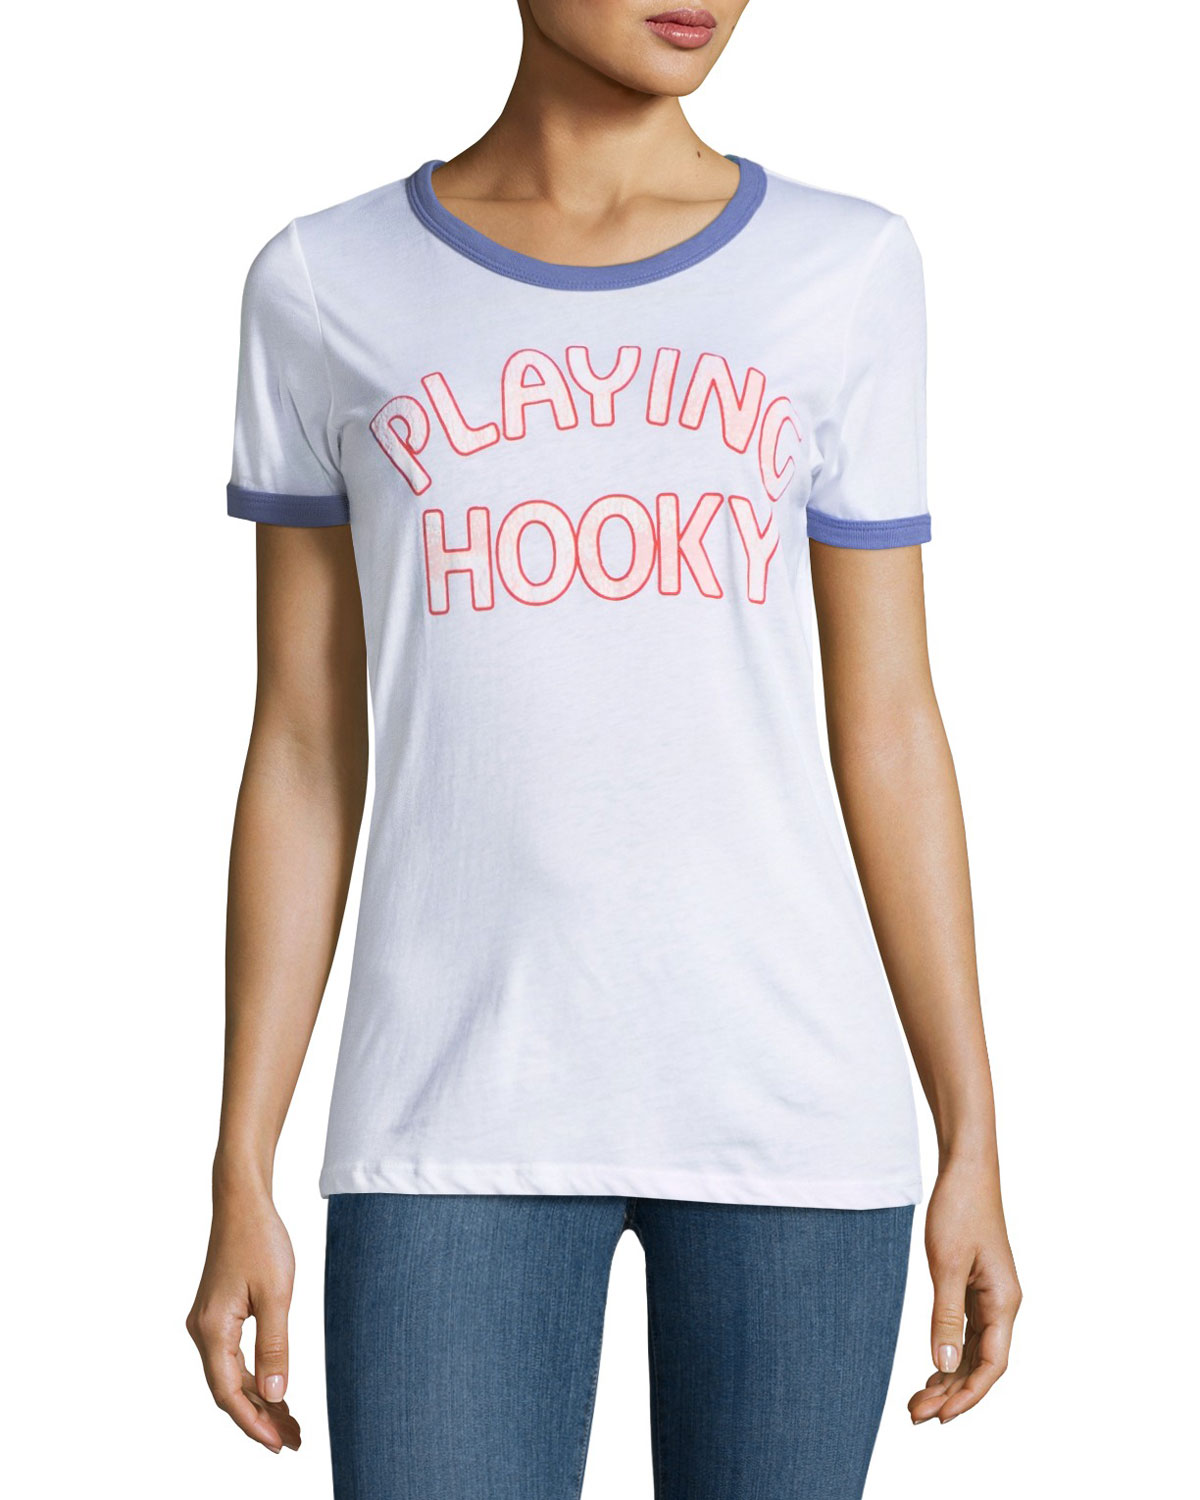 Playing Hooky Graphic Tee